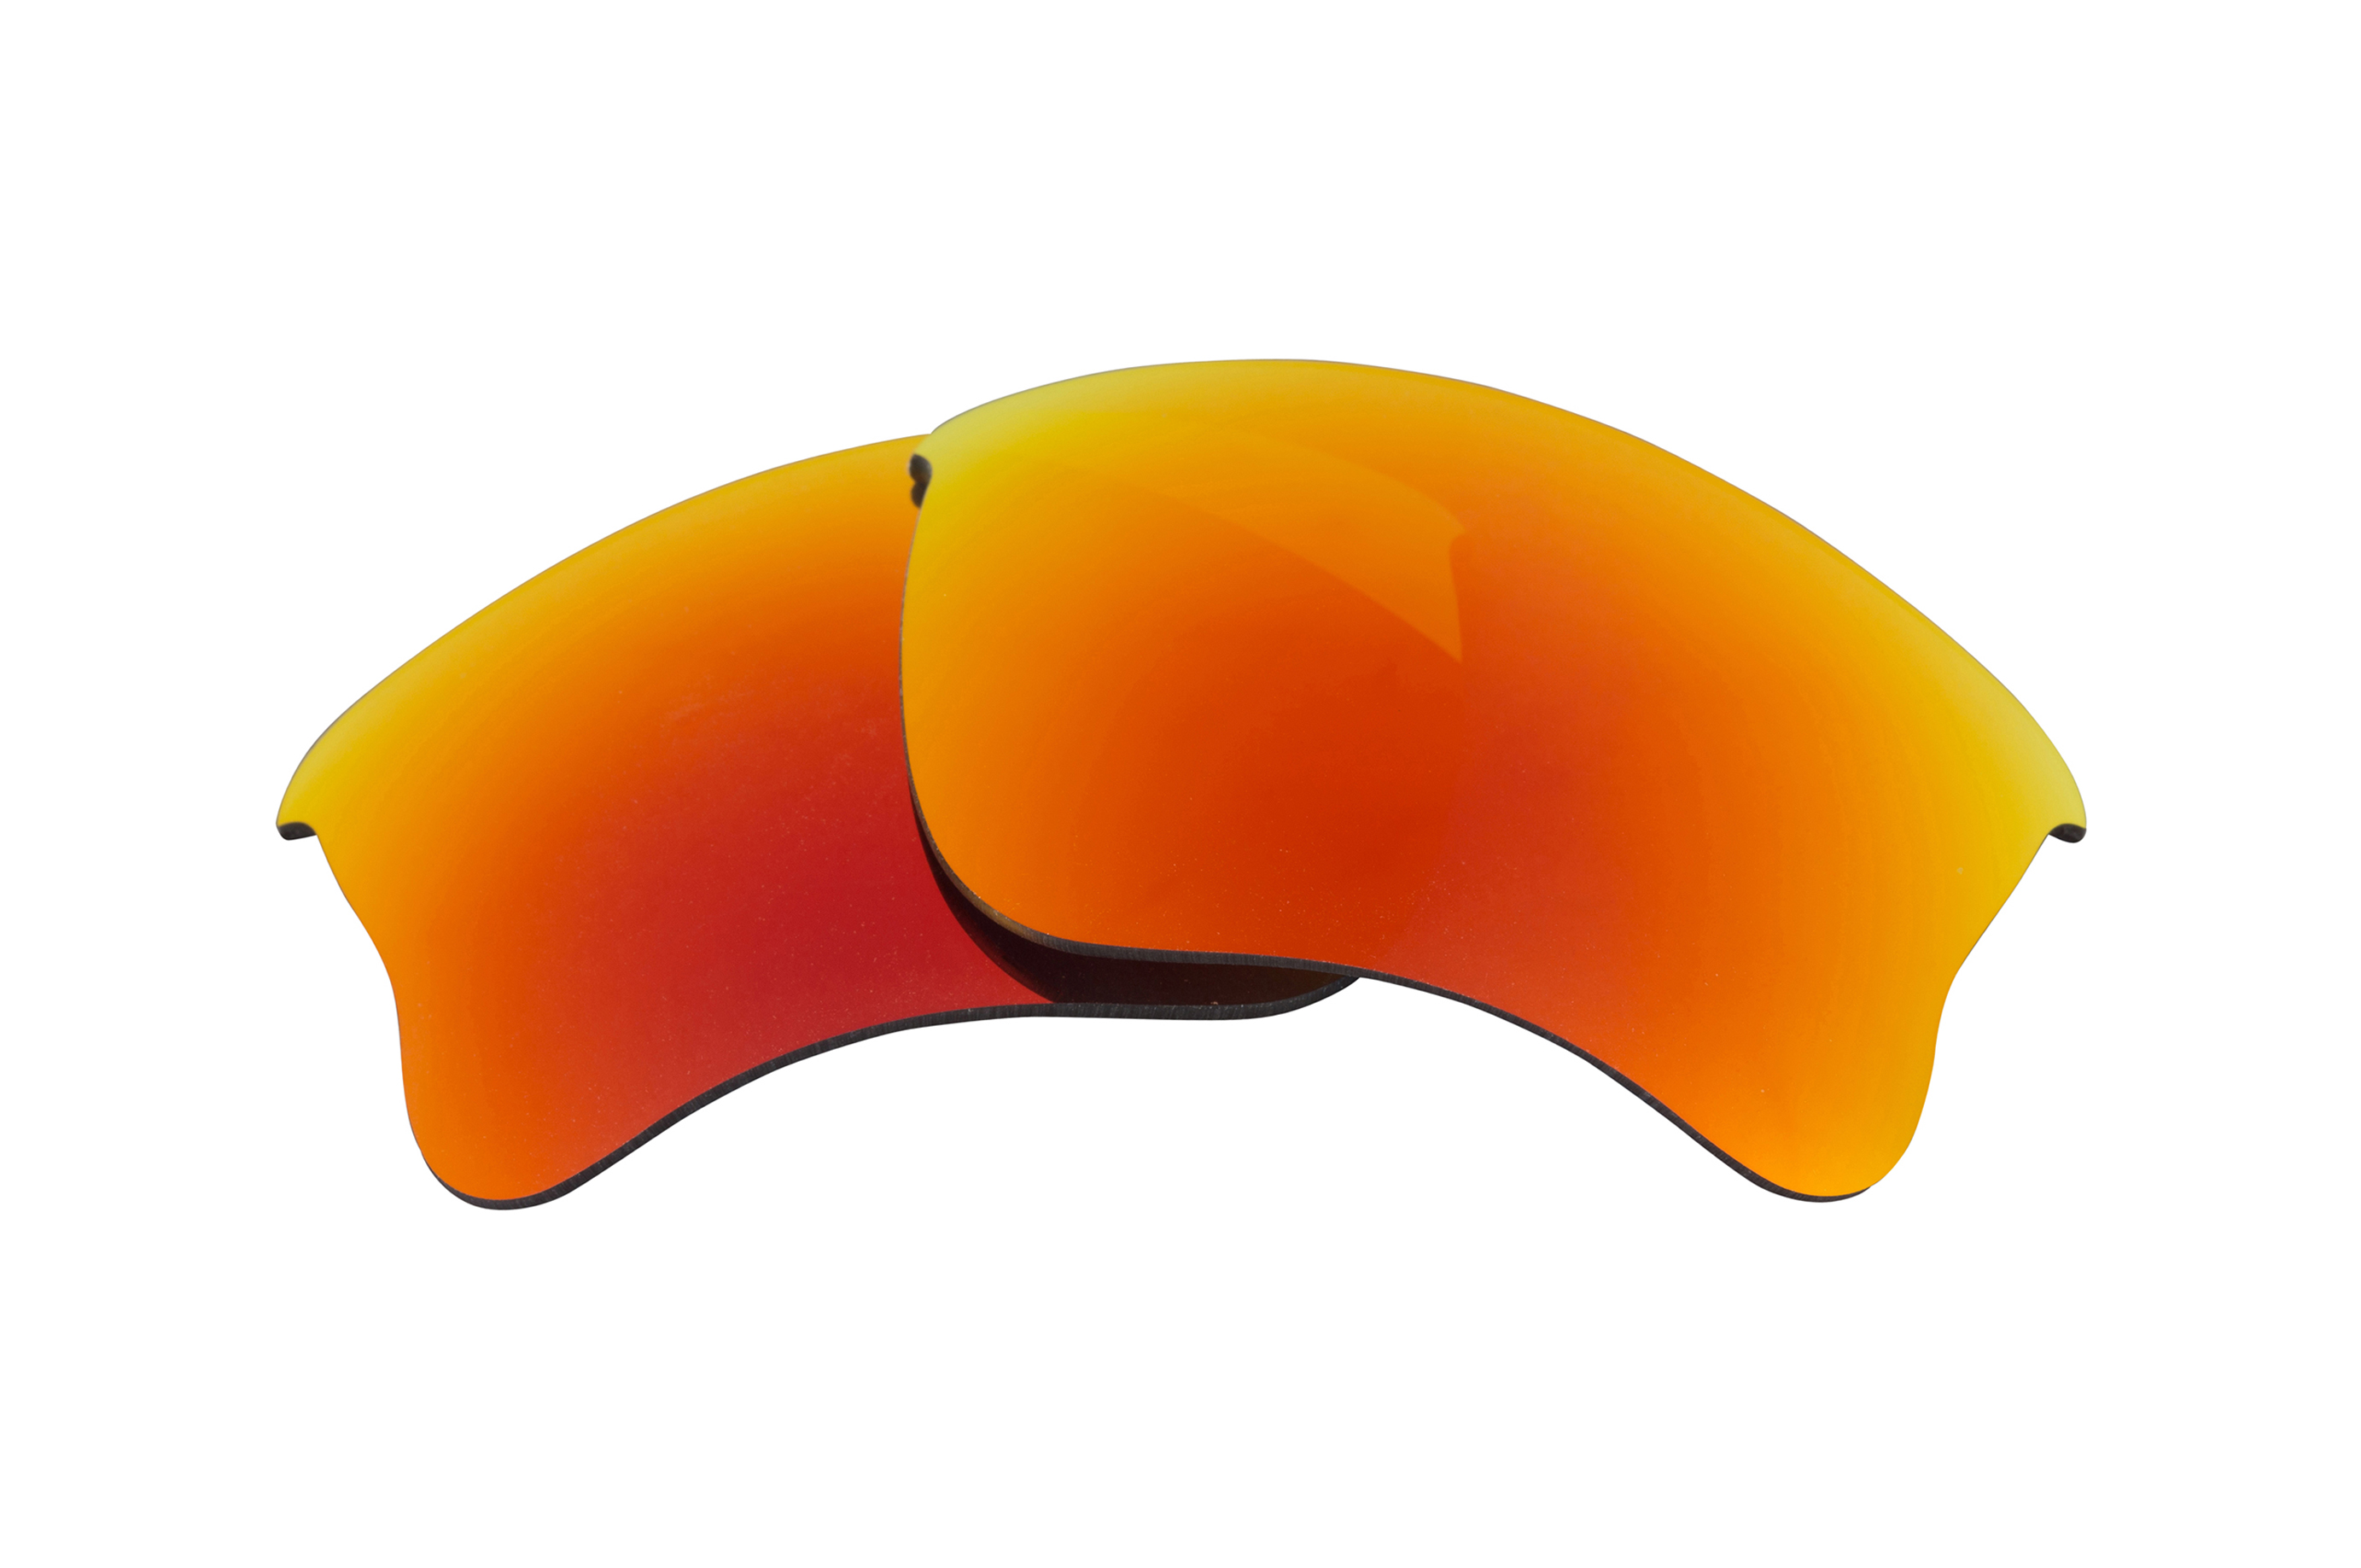 d7cb595a6c ... Seek Polarized Replacement Lenses Oakley Half Jacket 2.0 XL Fire Red  Mirror. Be the first to write a review. About this product. Picture 1 of 6   Picture ...